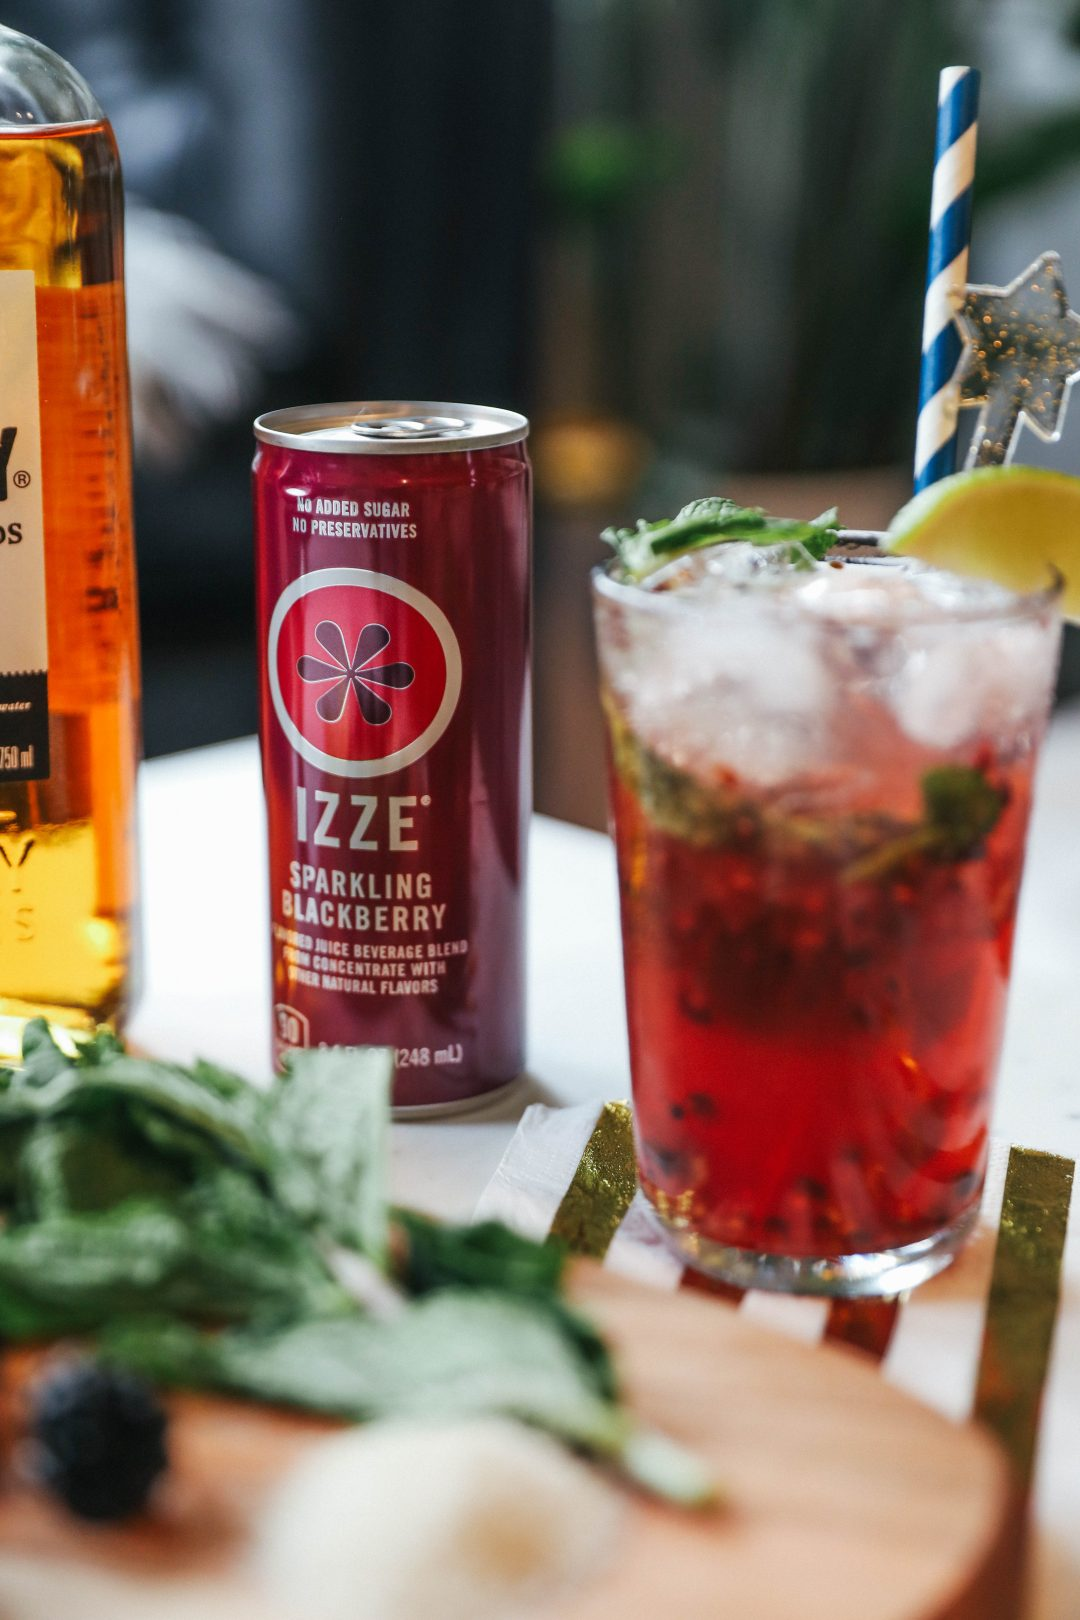 End of Summer Sparkler Cocktail with IZZE Blackberry Sparkling Juice.